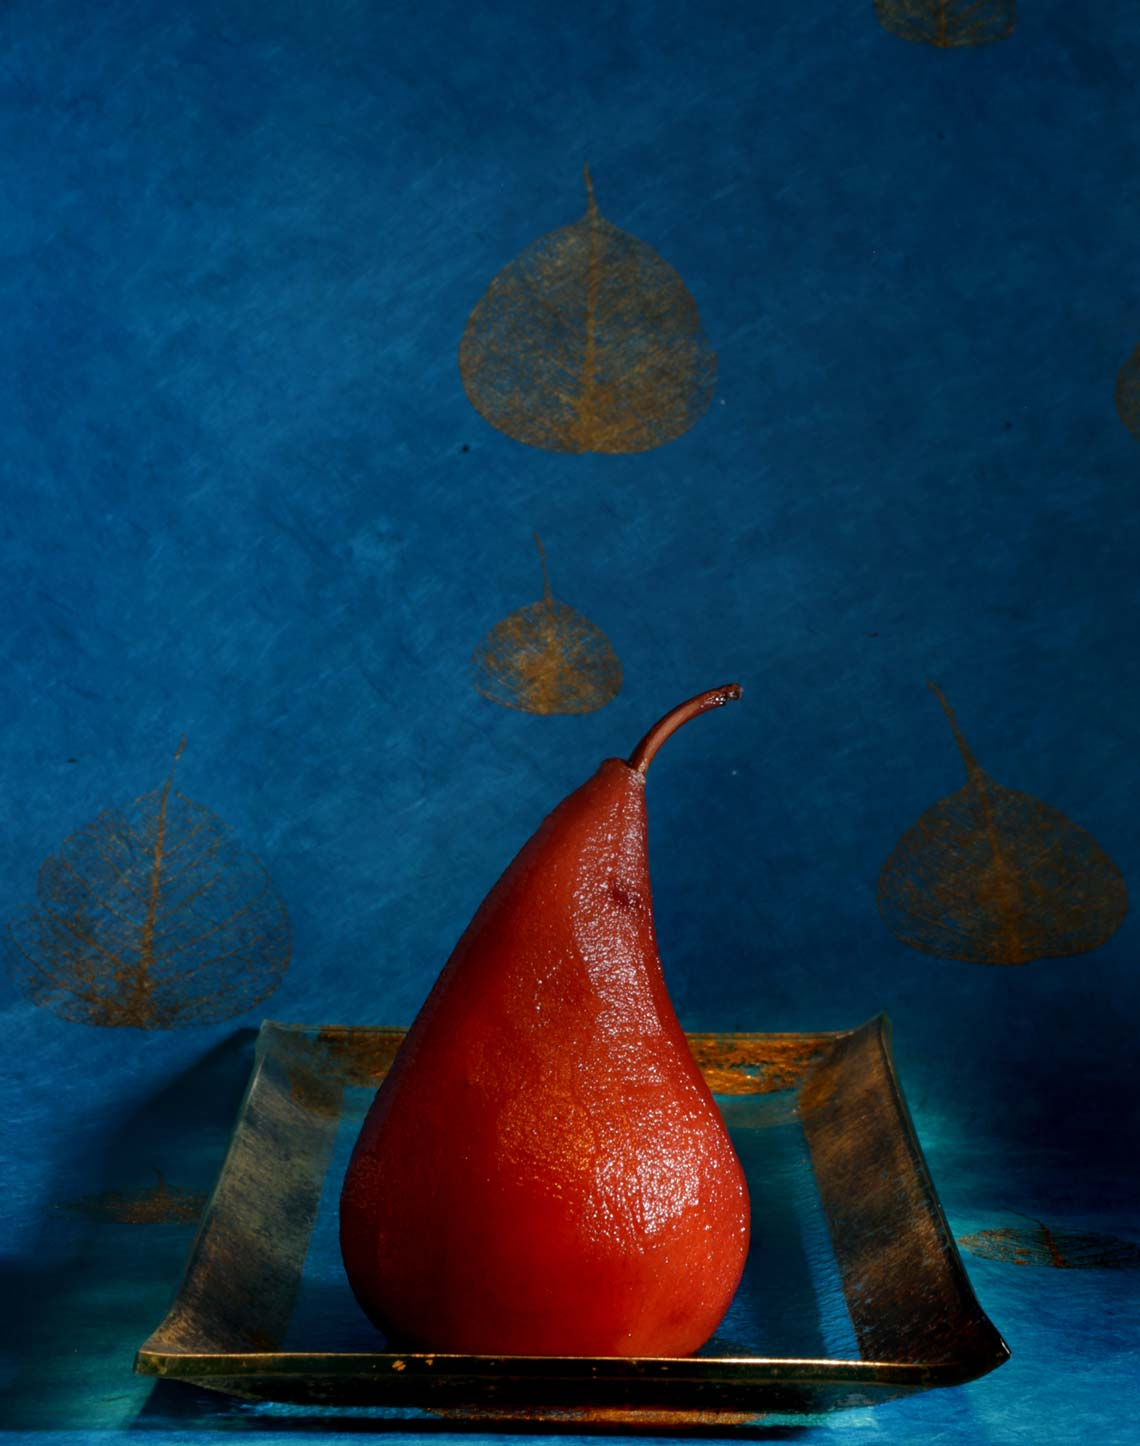 The Regal Pear